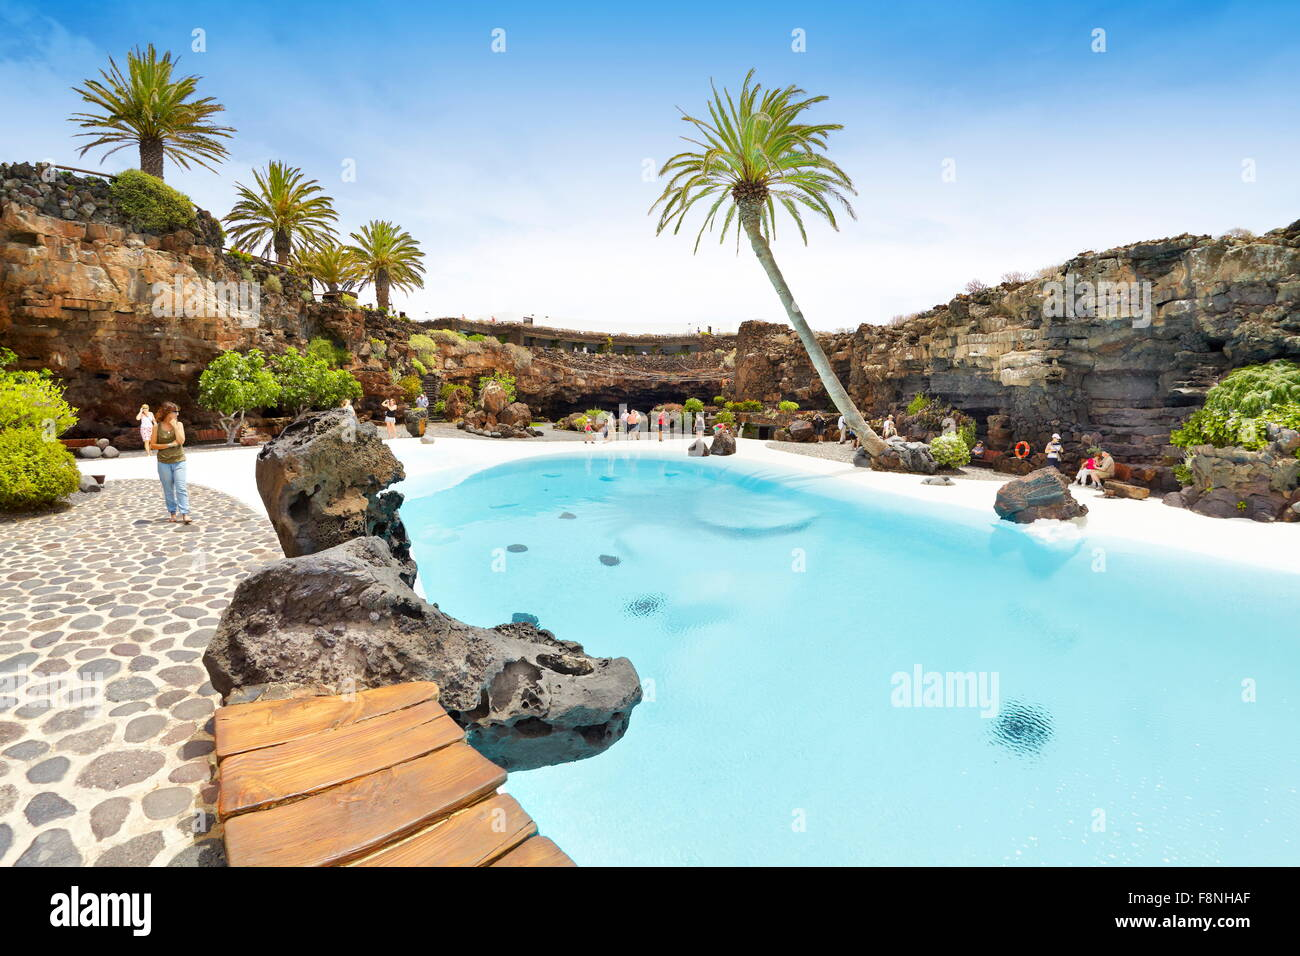 Lanzarote Island, blue pool in Jameos del Aqua, Spain, Canary Islands - Stock Image